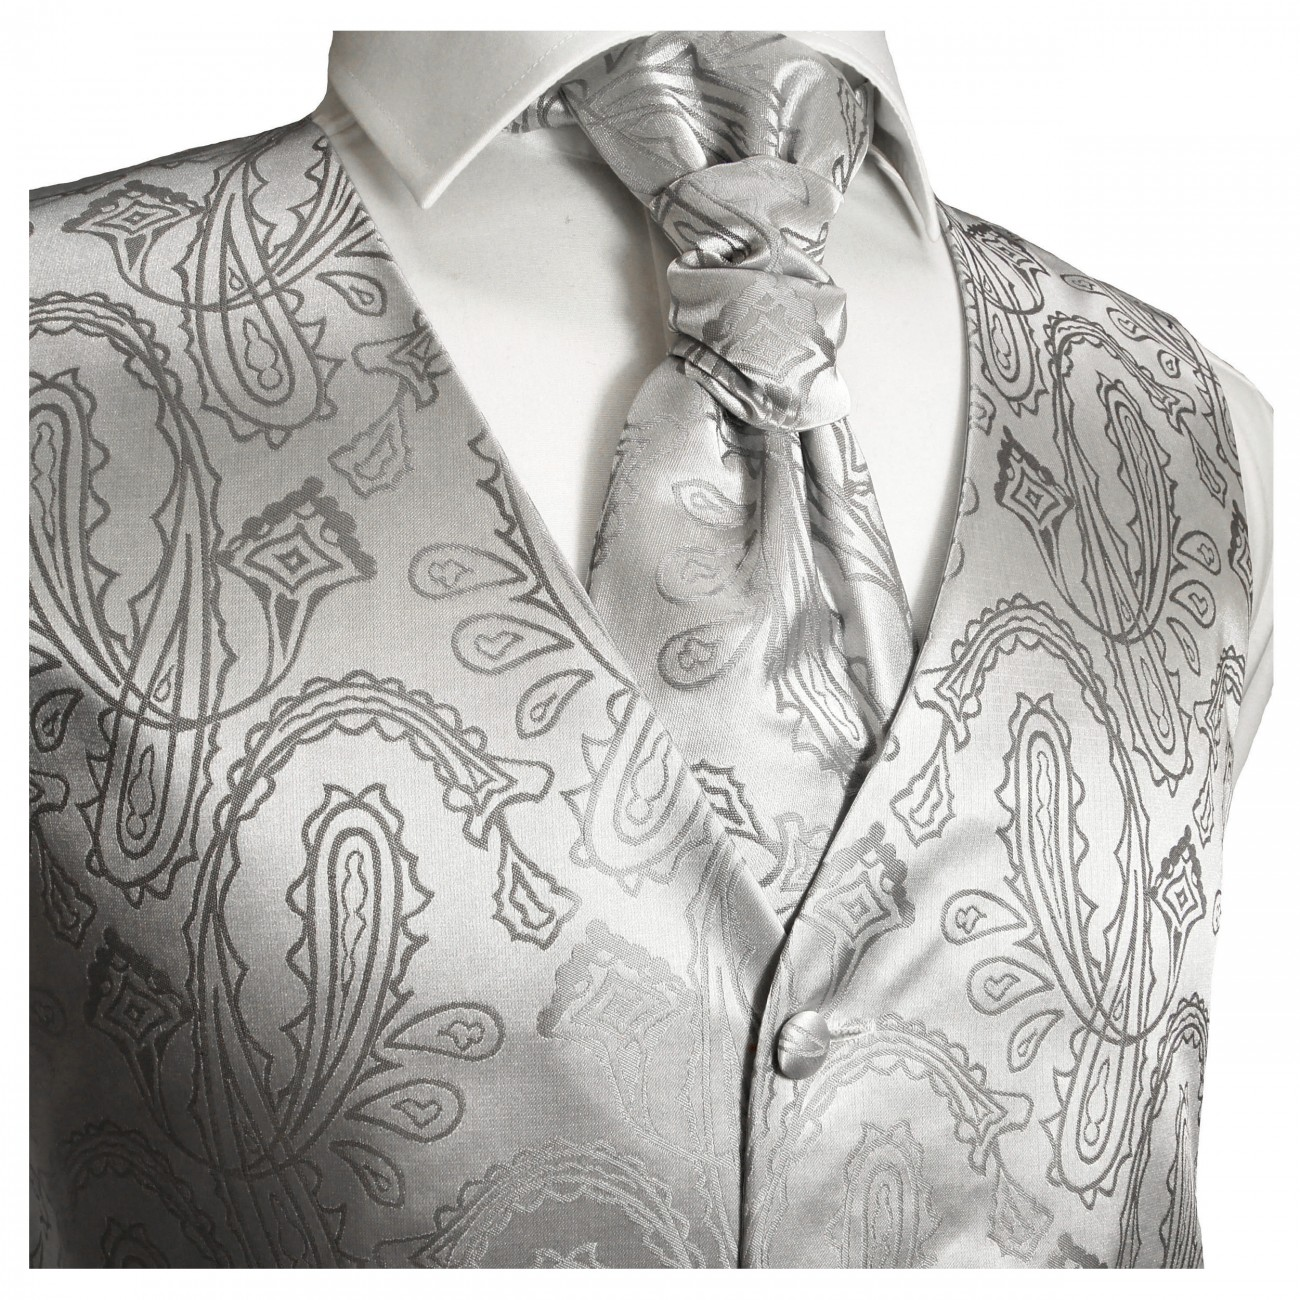 Silver waistcoat paisley for wedding with necktie ascot tie pocket square and cufflinks v3